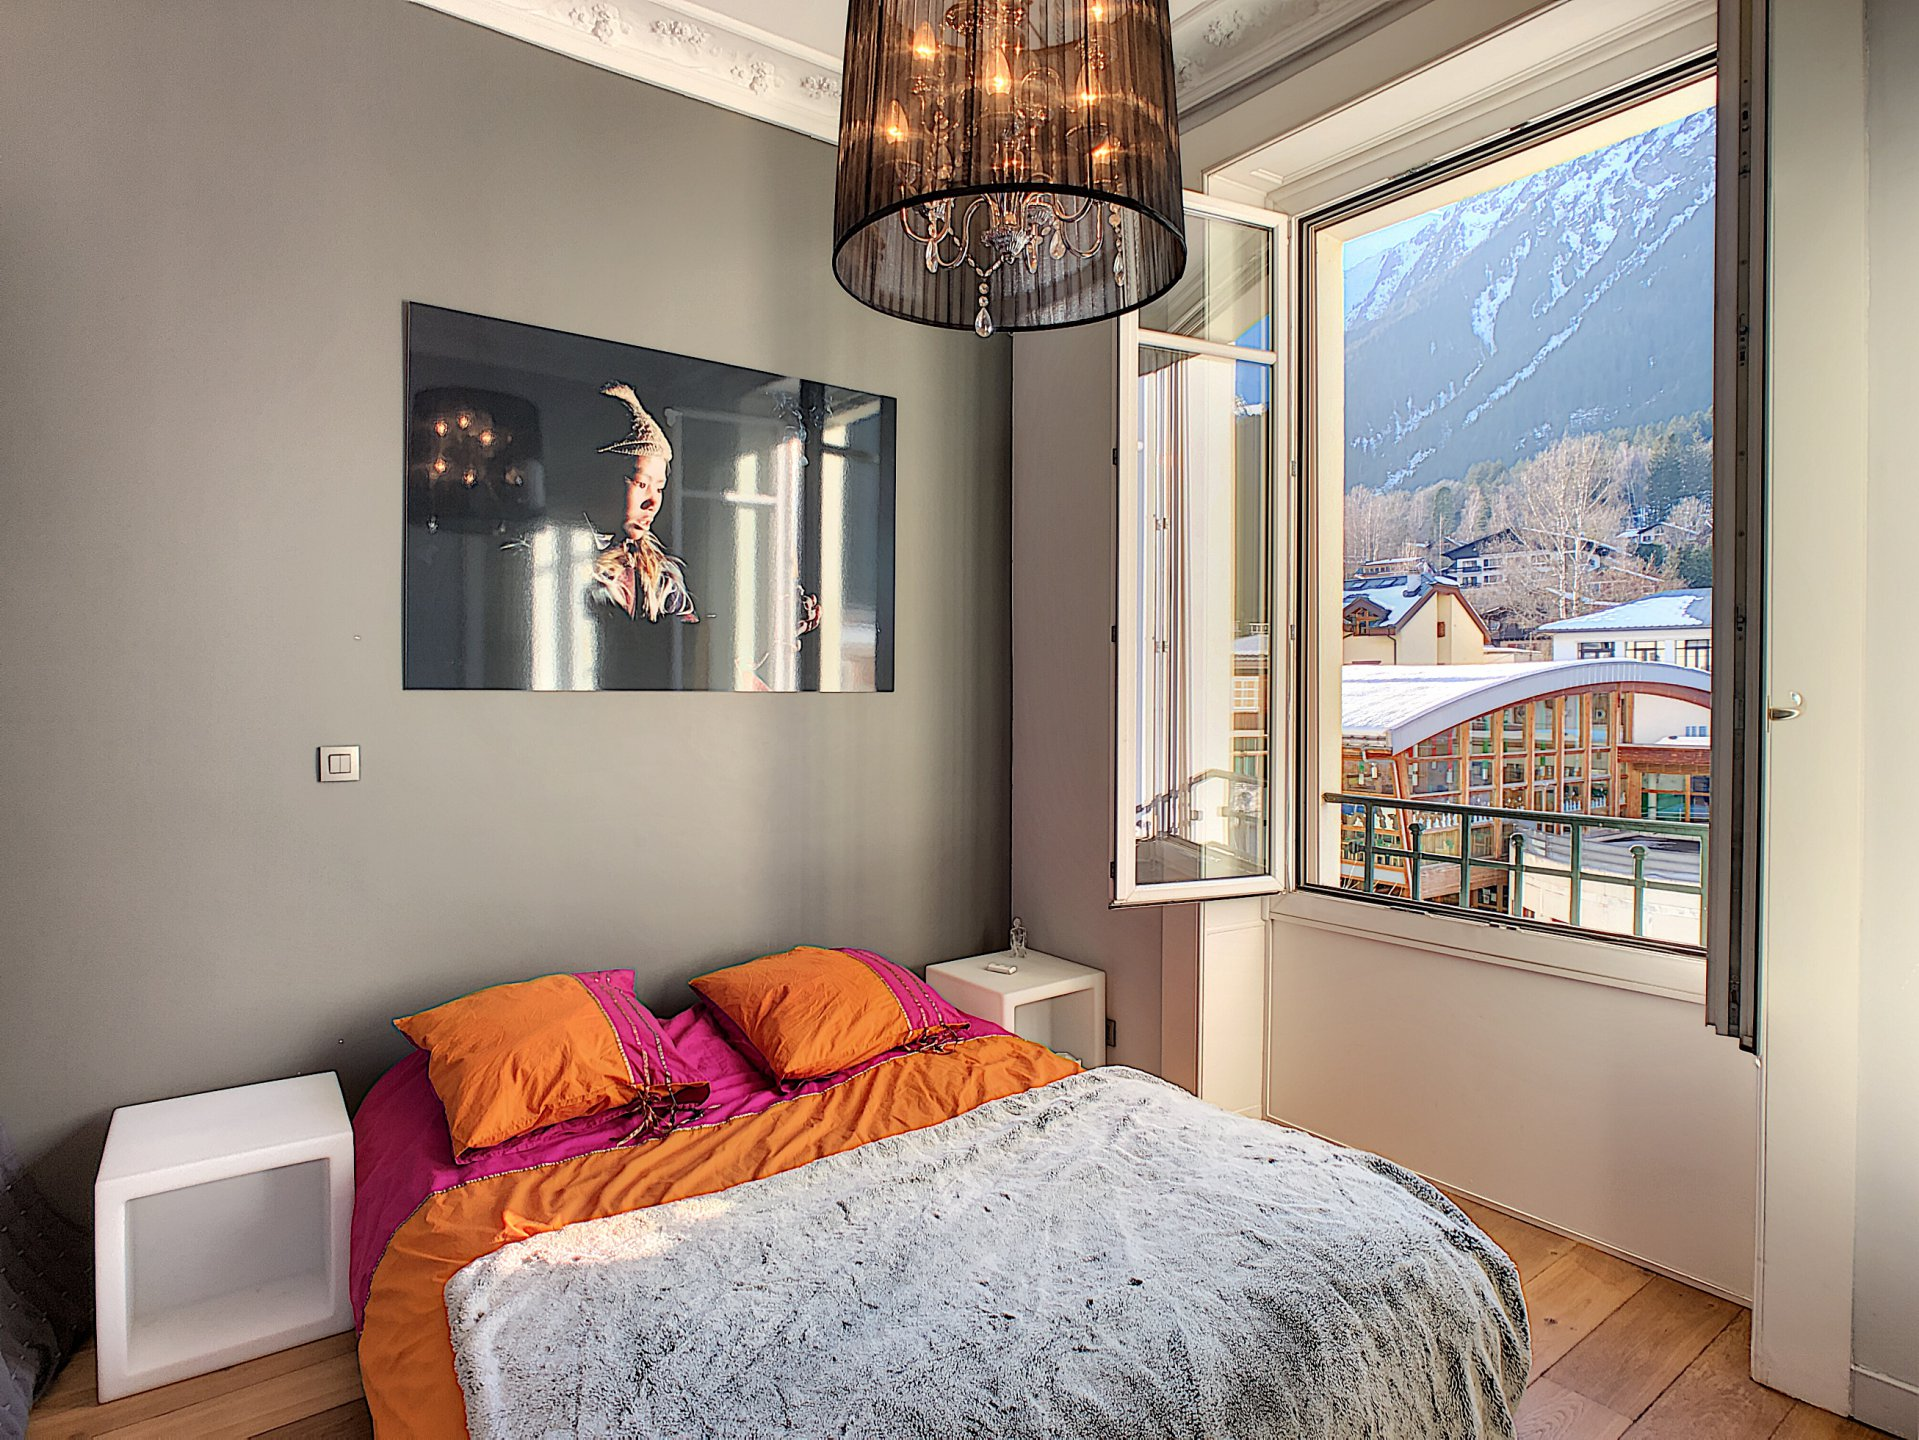 2 bedroom apartment with 3rd mezanine bedroom Chamonix centre